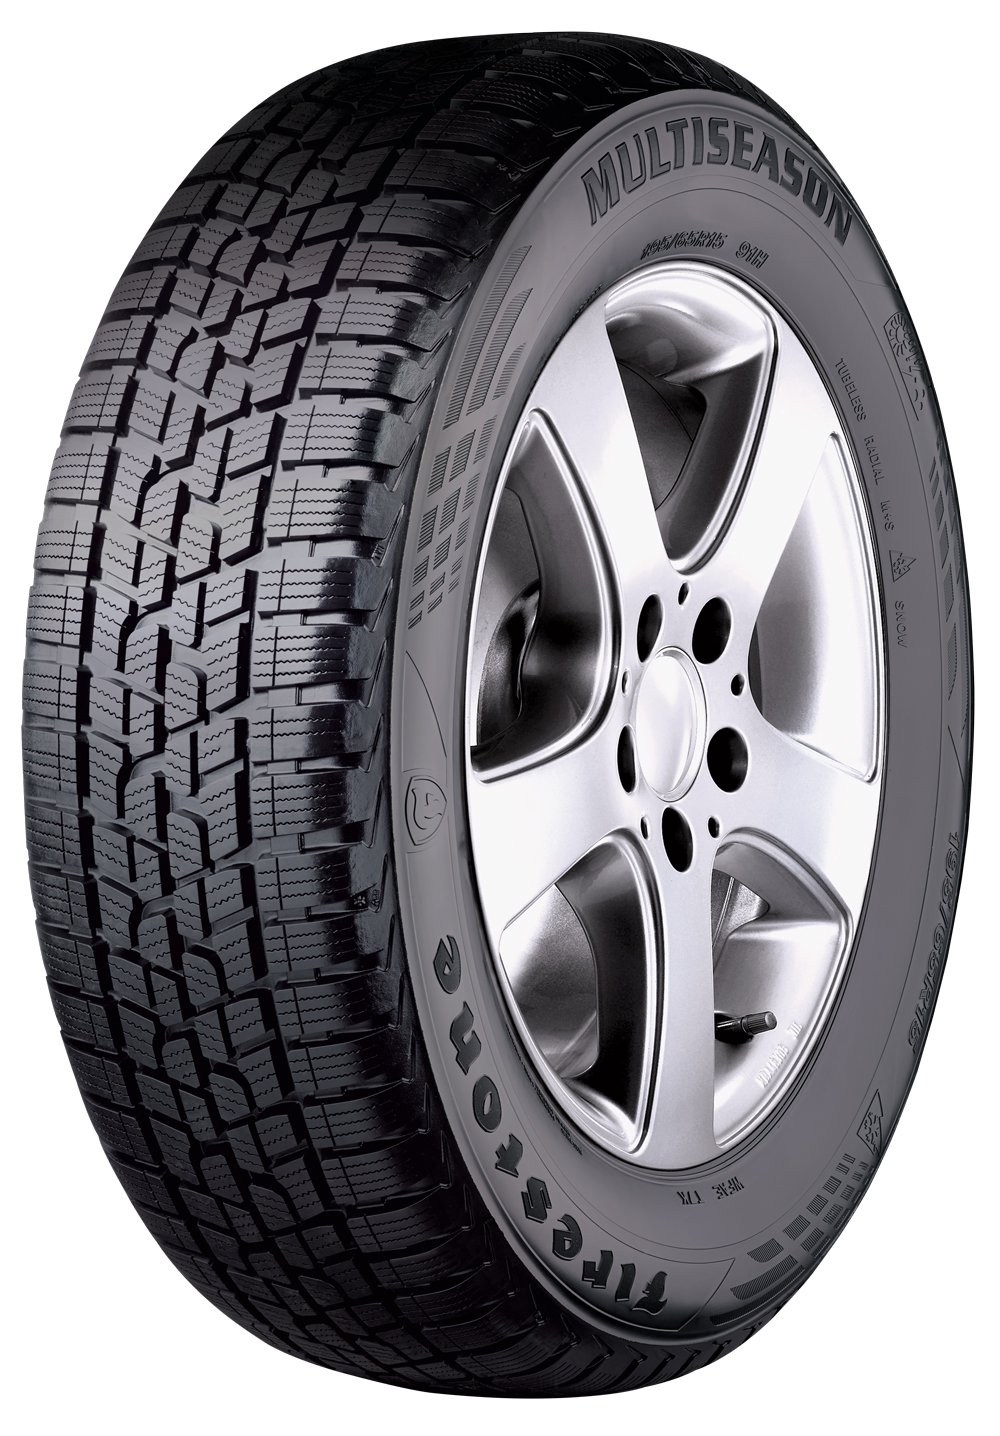 C//C//72 Neum/ático todas estaciones 205//55//R16 94V Firestone Multiseason